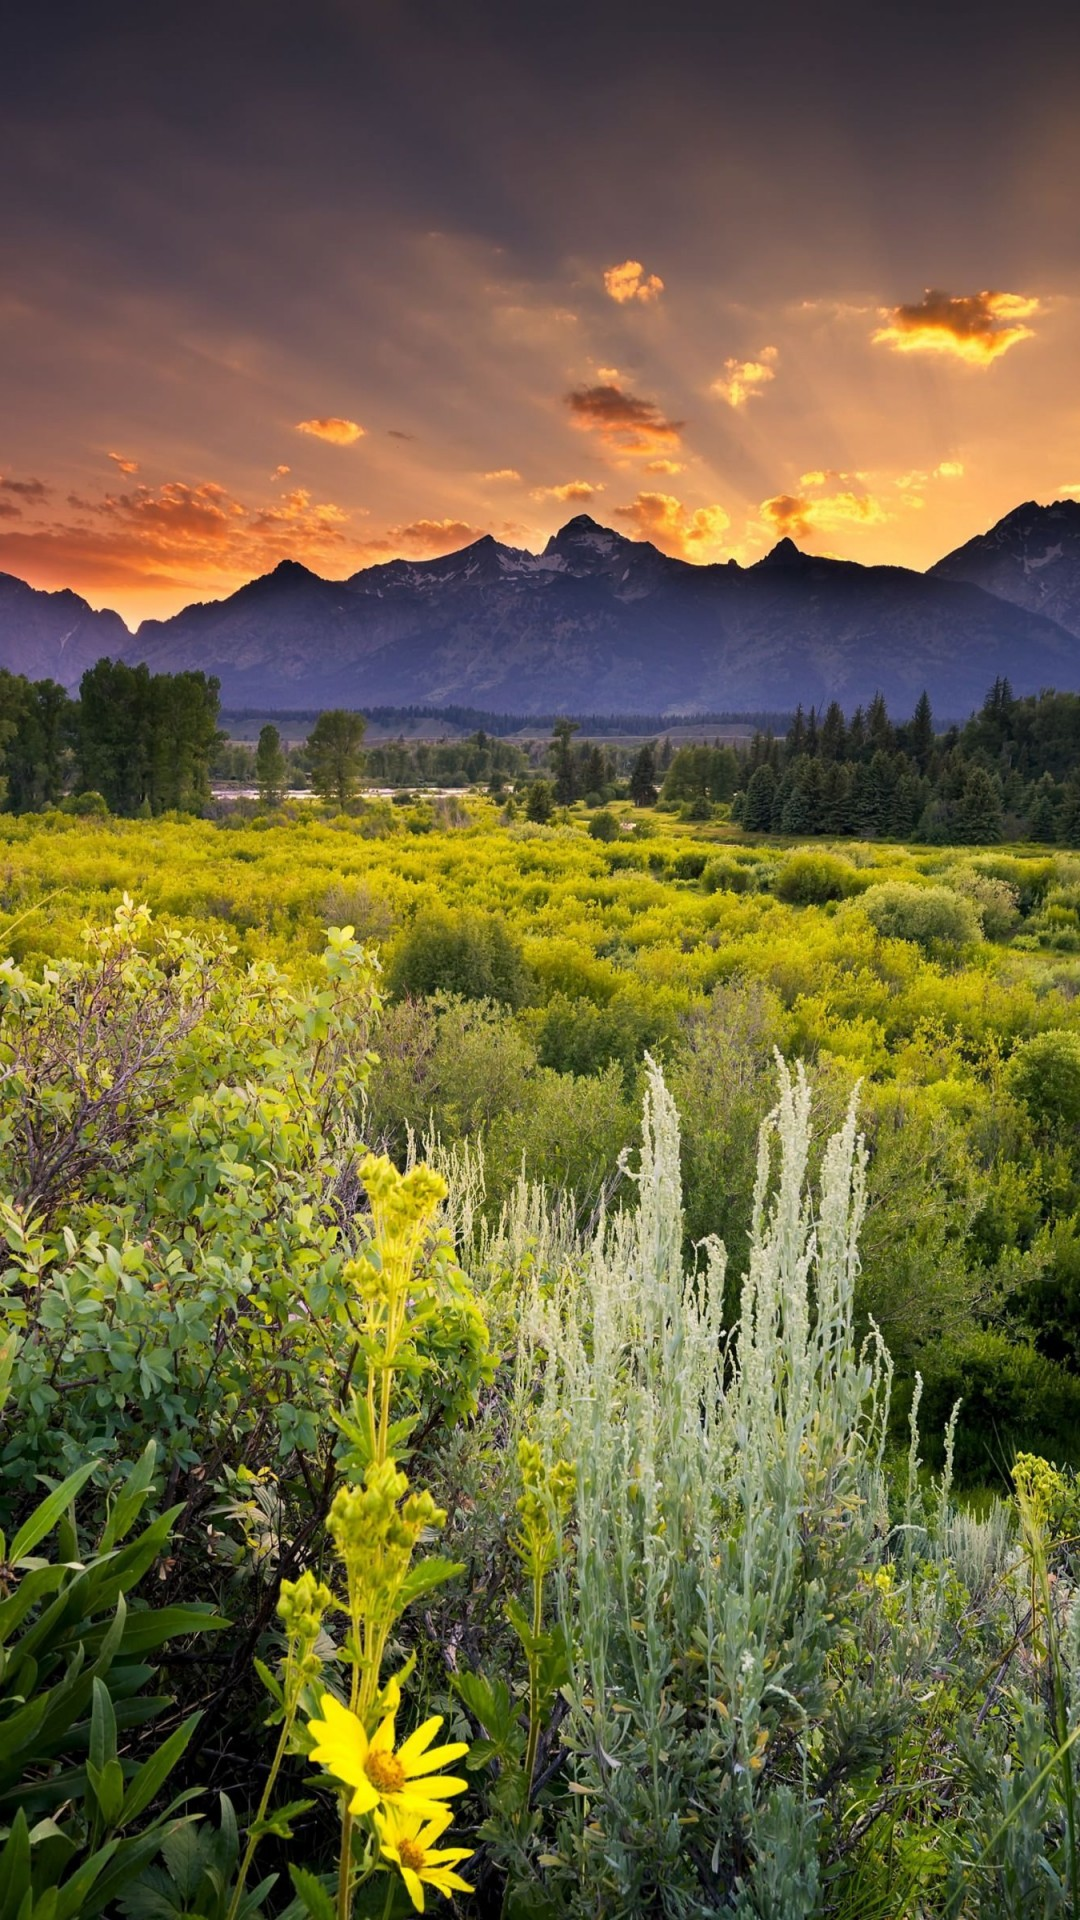 Sunset in Grand Teton National Park Wallpaper for SAMSUNG Galaxy Note 3